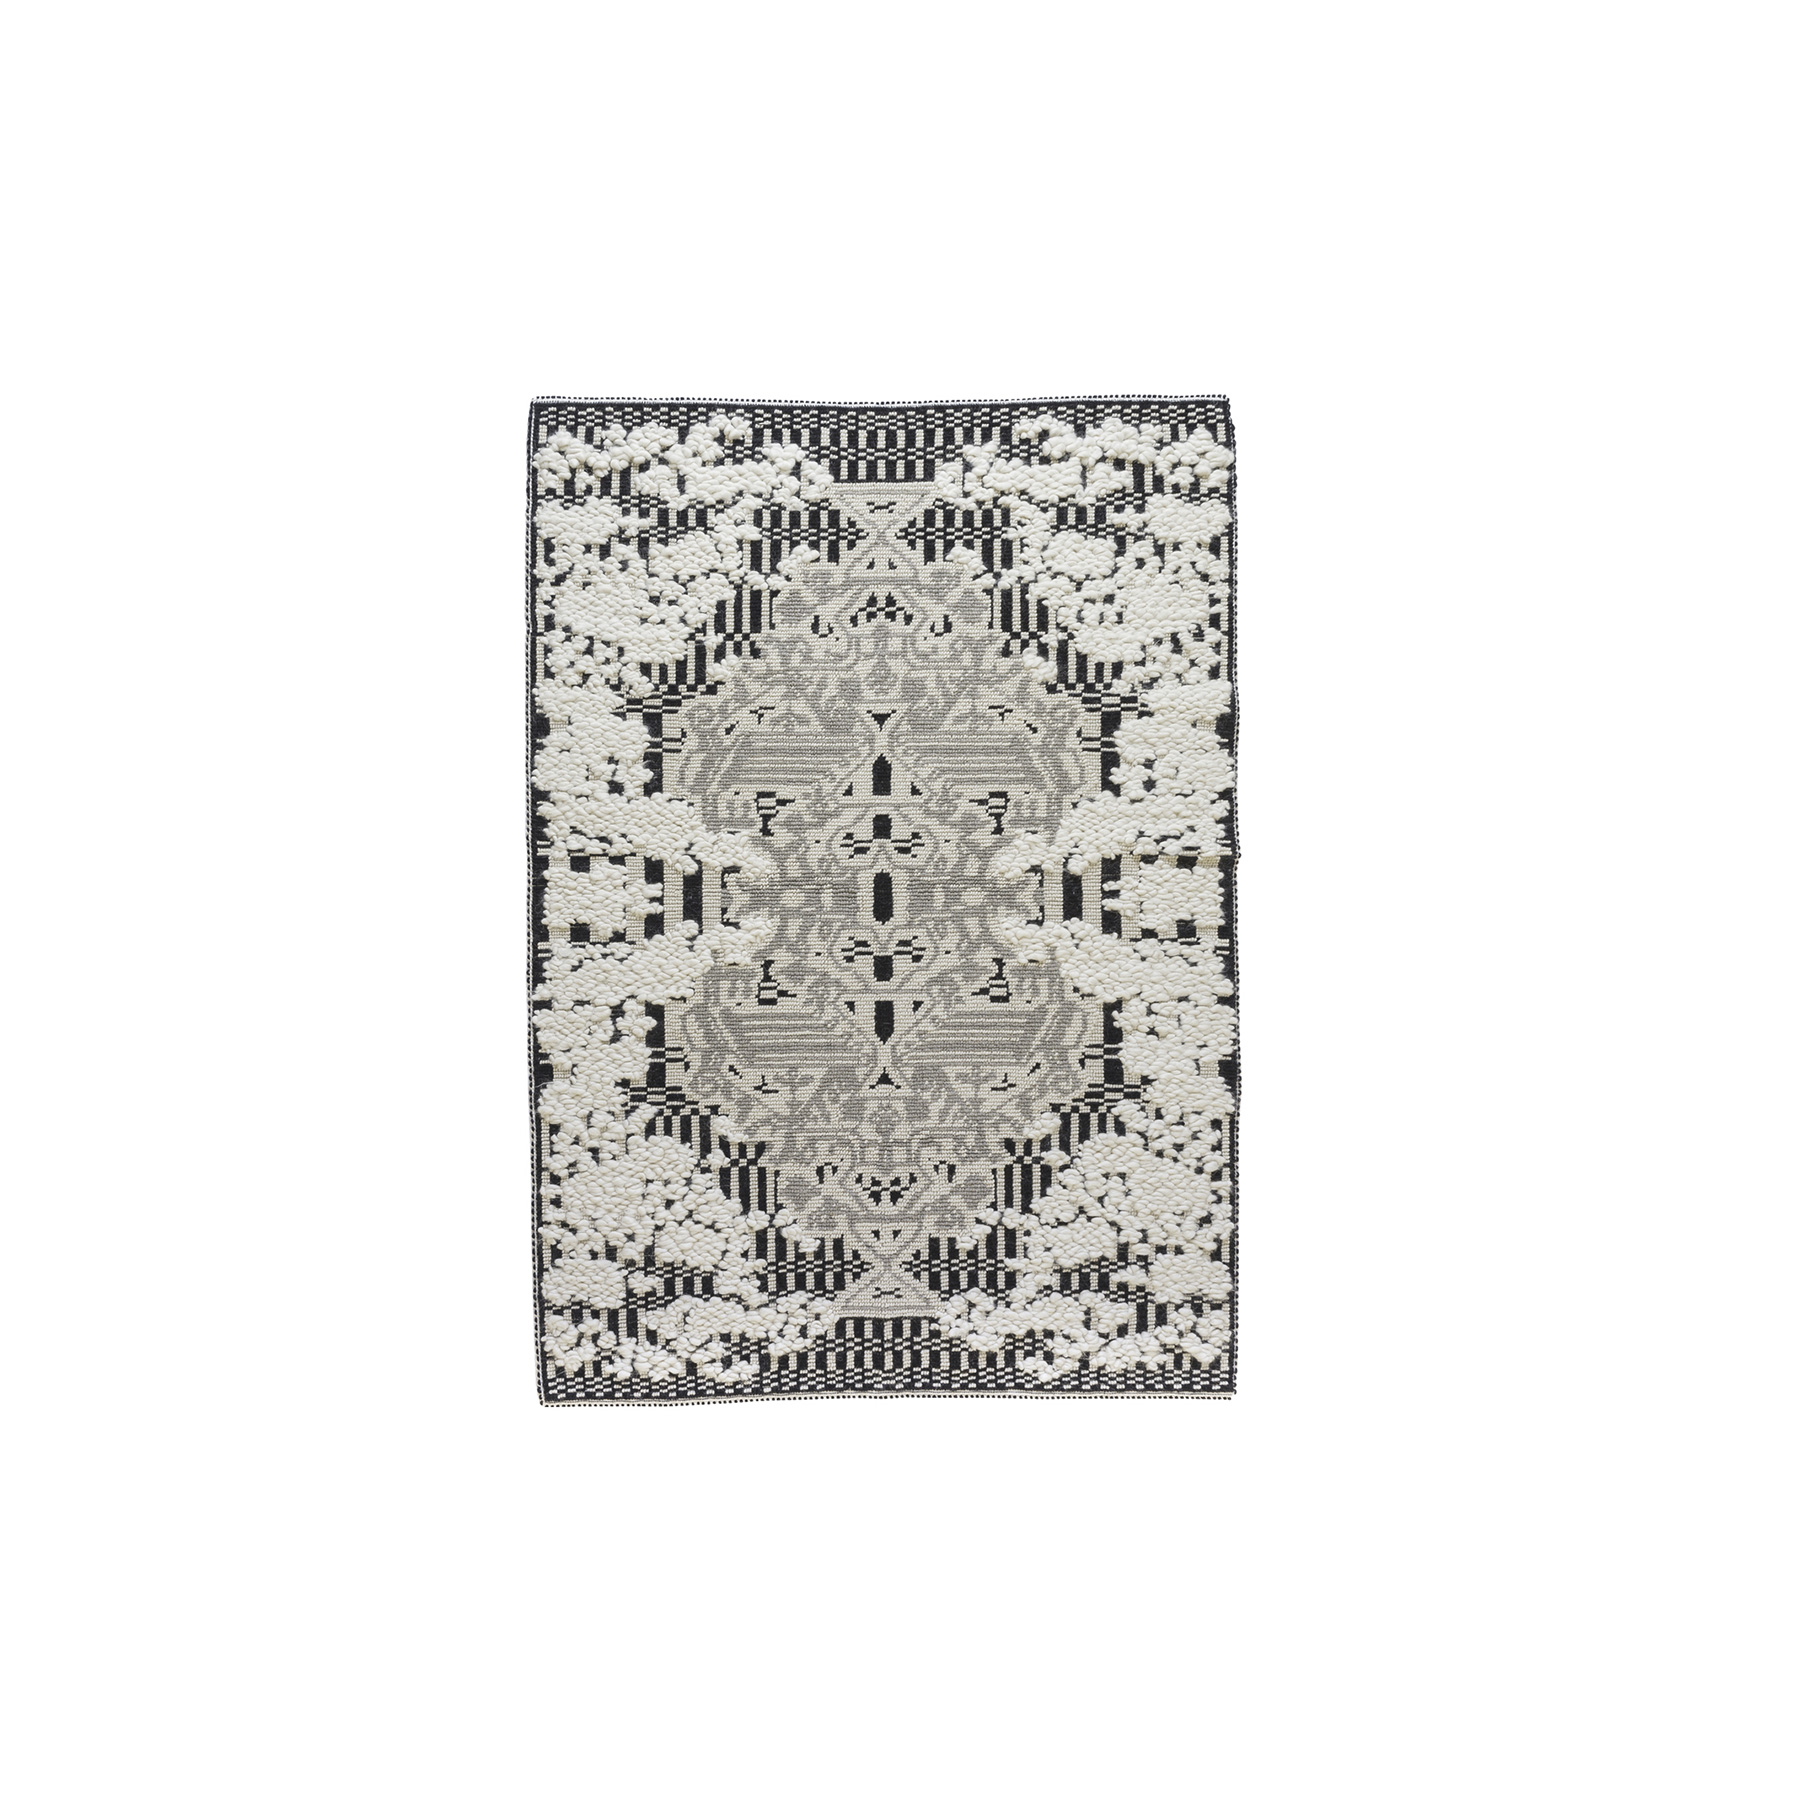 Giardino Fiorito Rug - This elegant and comfortable rug is soft to the touch and its decoration is dynamic and striking, and is achieved with the 'Pibiones' technique, a traditional Sardinian weaving technique with geometric designs that represent a stylized 'blooming bird'. The pure Sardinian wool features three main colours: ivory for the flowers, grey for the bird, and black for the background. In this carpet, tradition and innovation are effortlessly weaved together